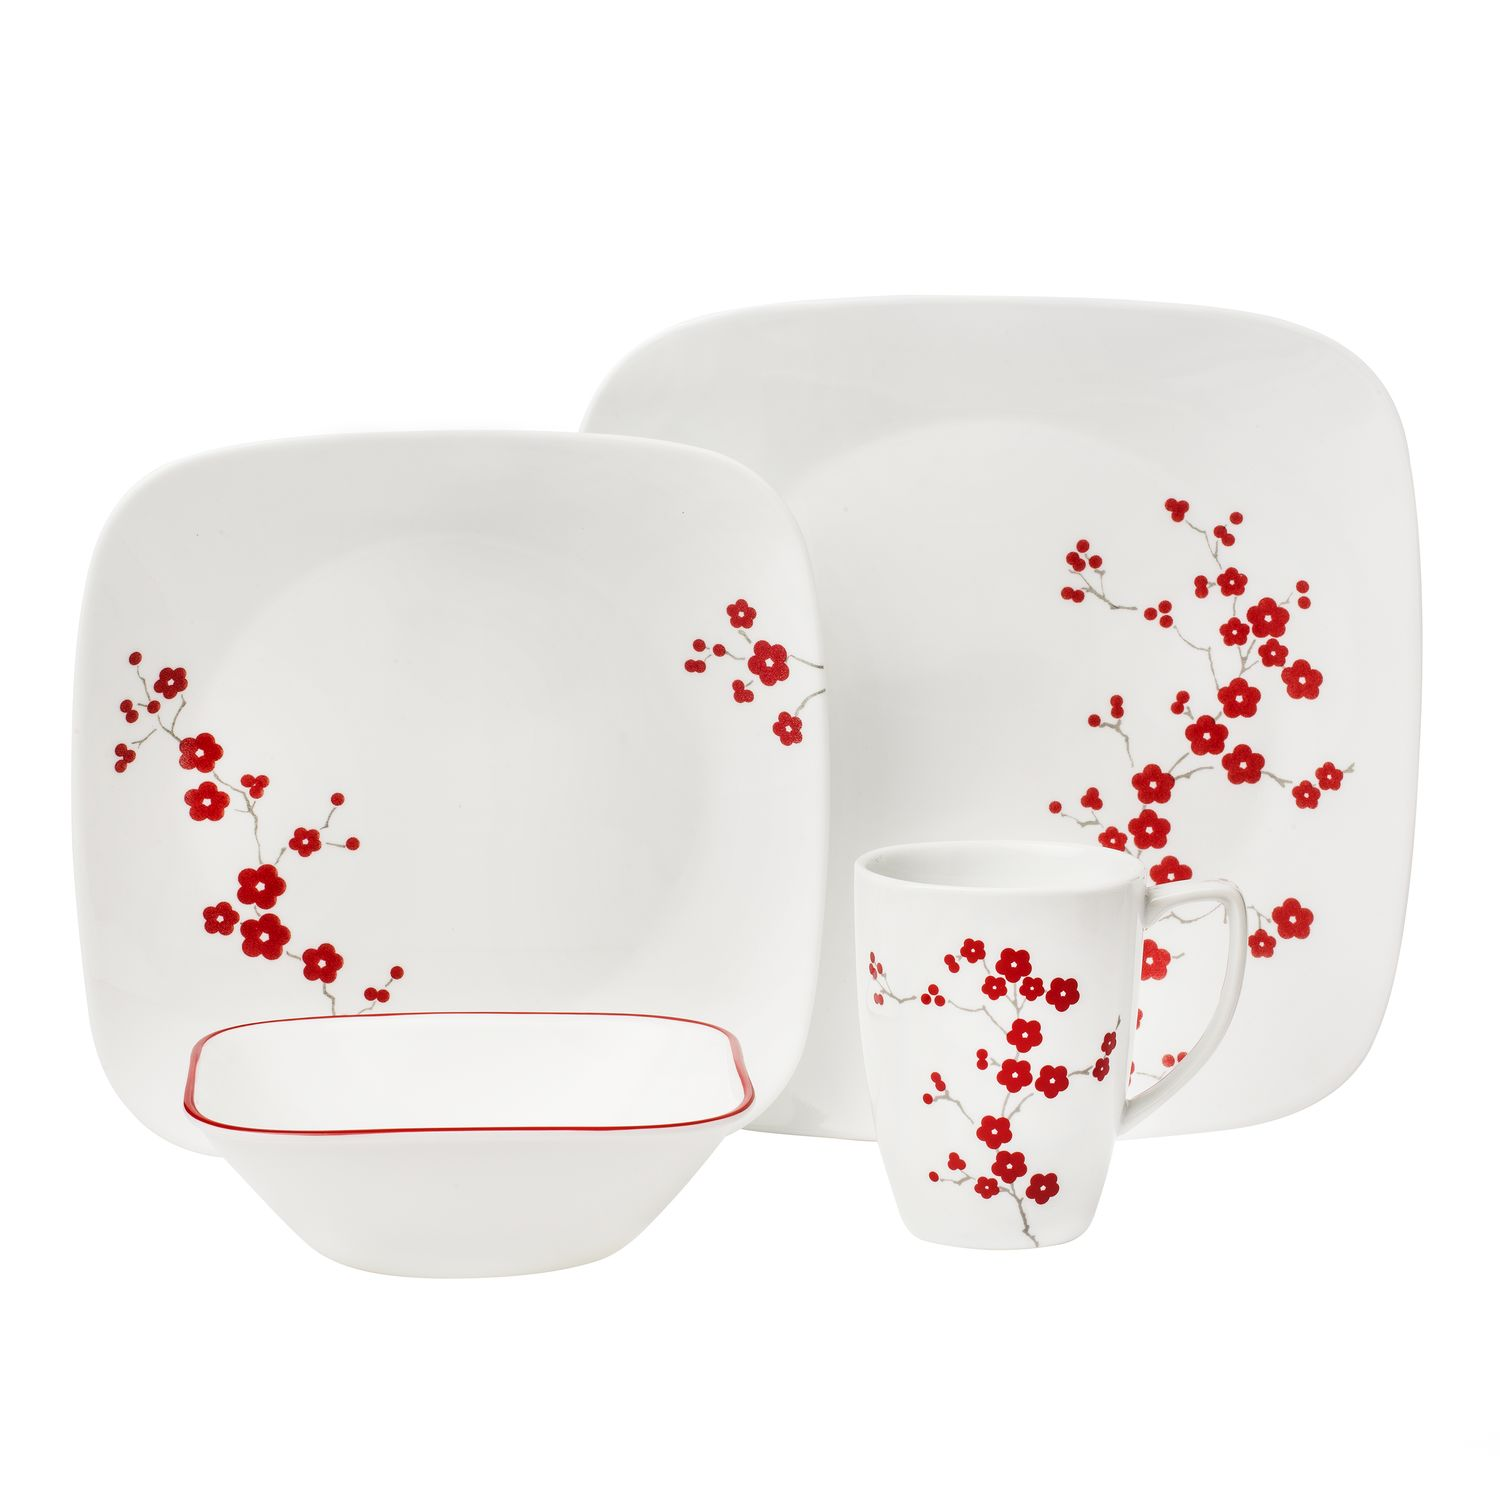 Square Hanami Garden 16-pc Dinnerware Set  sc 1 st  Designer Dinnerware & Square Hanami Garden 16-pc Dinnerware Set Review | Corelle Dinnerware